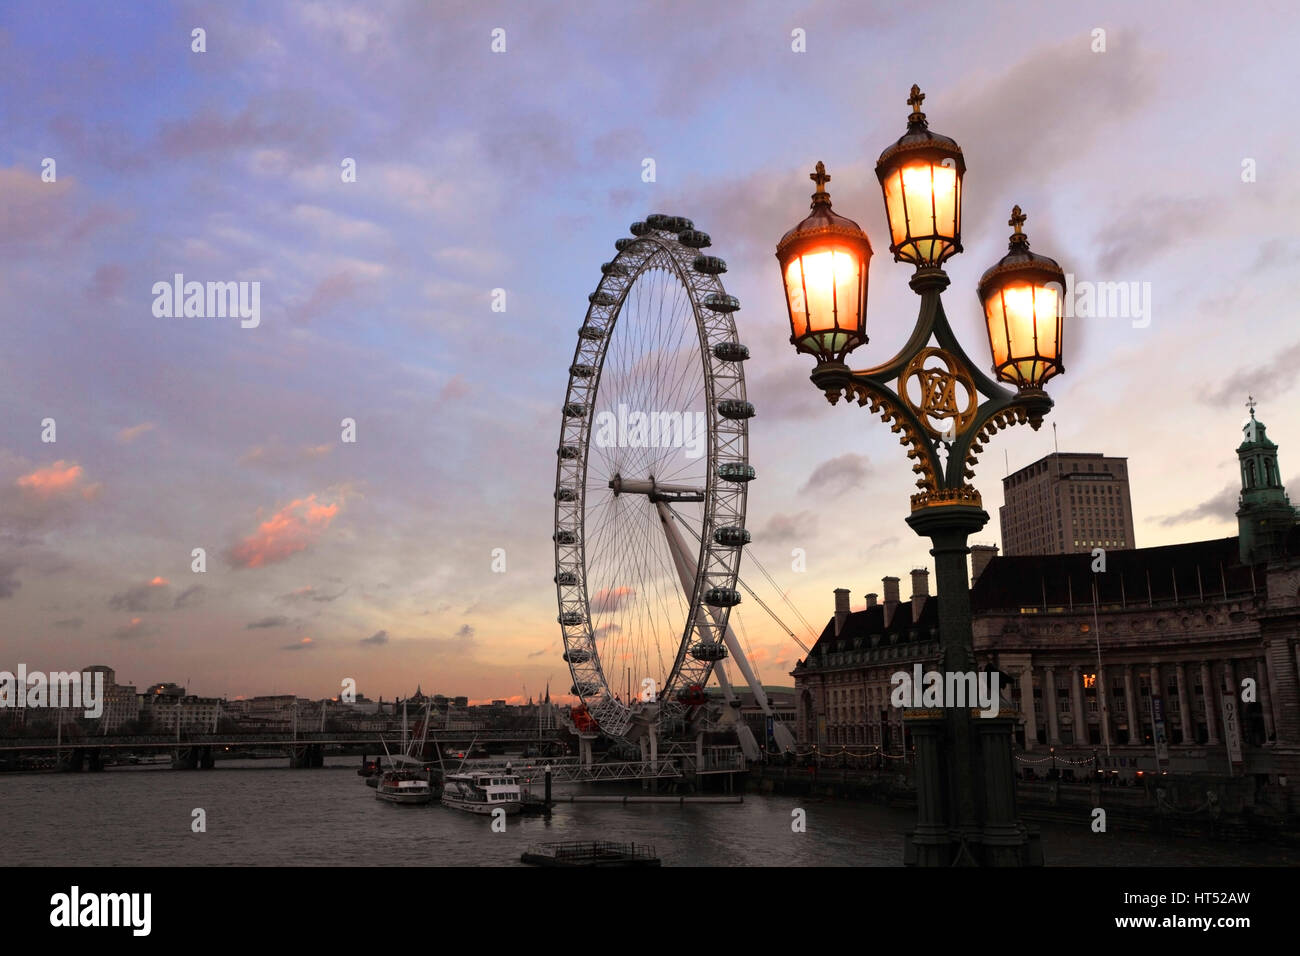 Summer sunset, London Eye or Millennium Observation Wheel opened in 1999, South Bank, river Thames, Lambeth, London - Stock Image